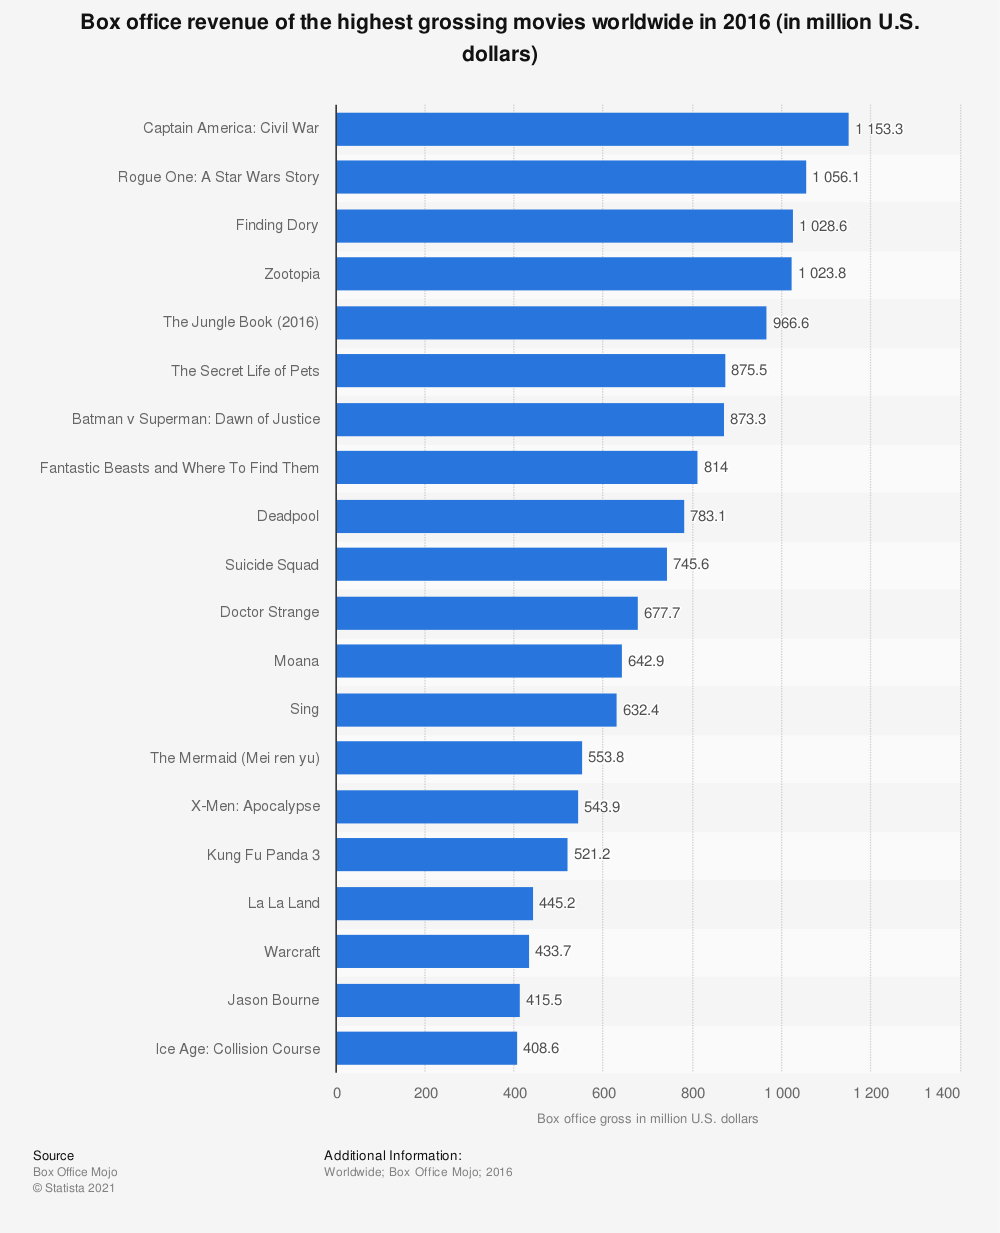 Statistic: Box office revenue of the highest grossing movies worldwide in 2016 (in million U.S. dollars) | Statista